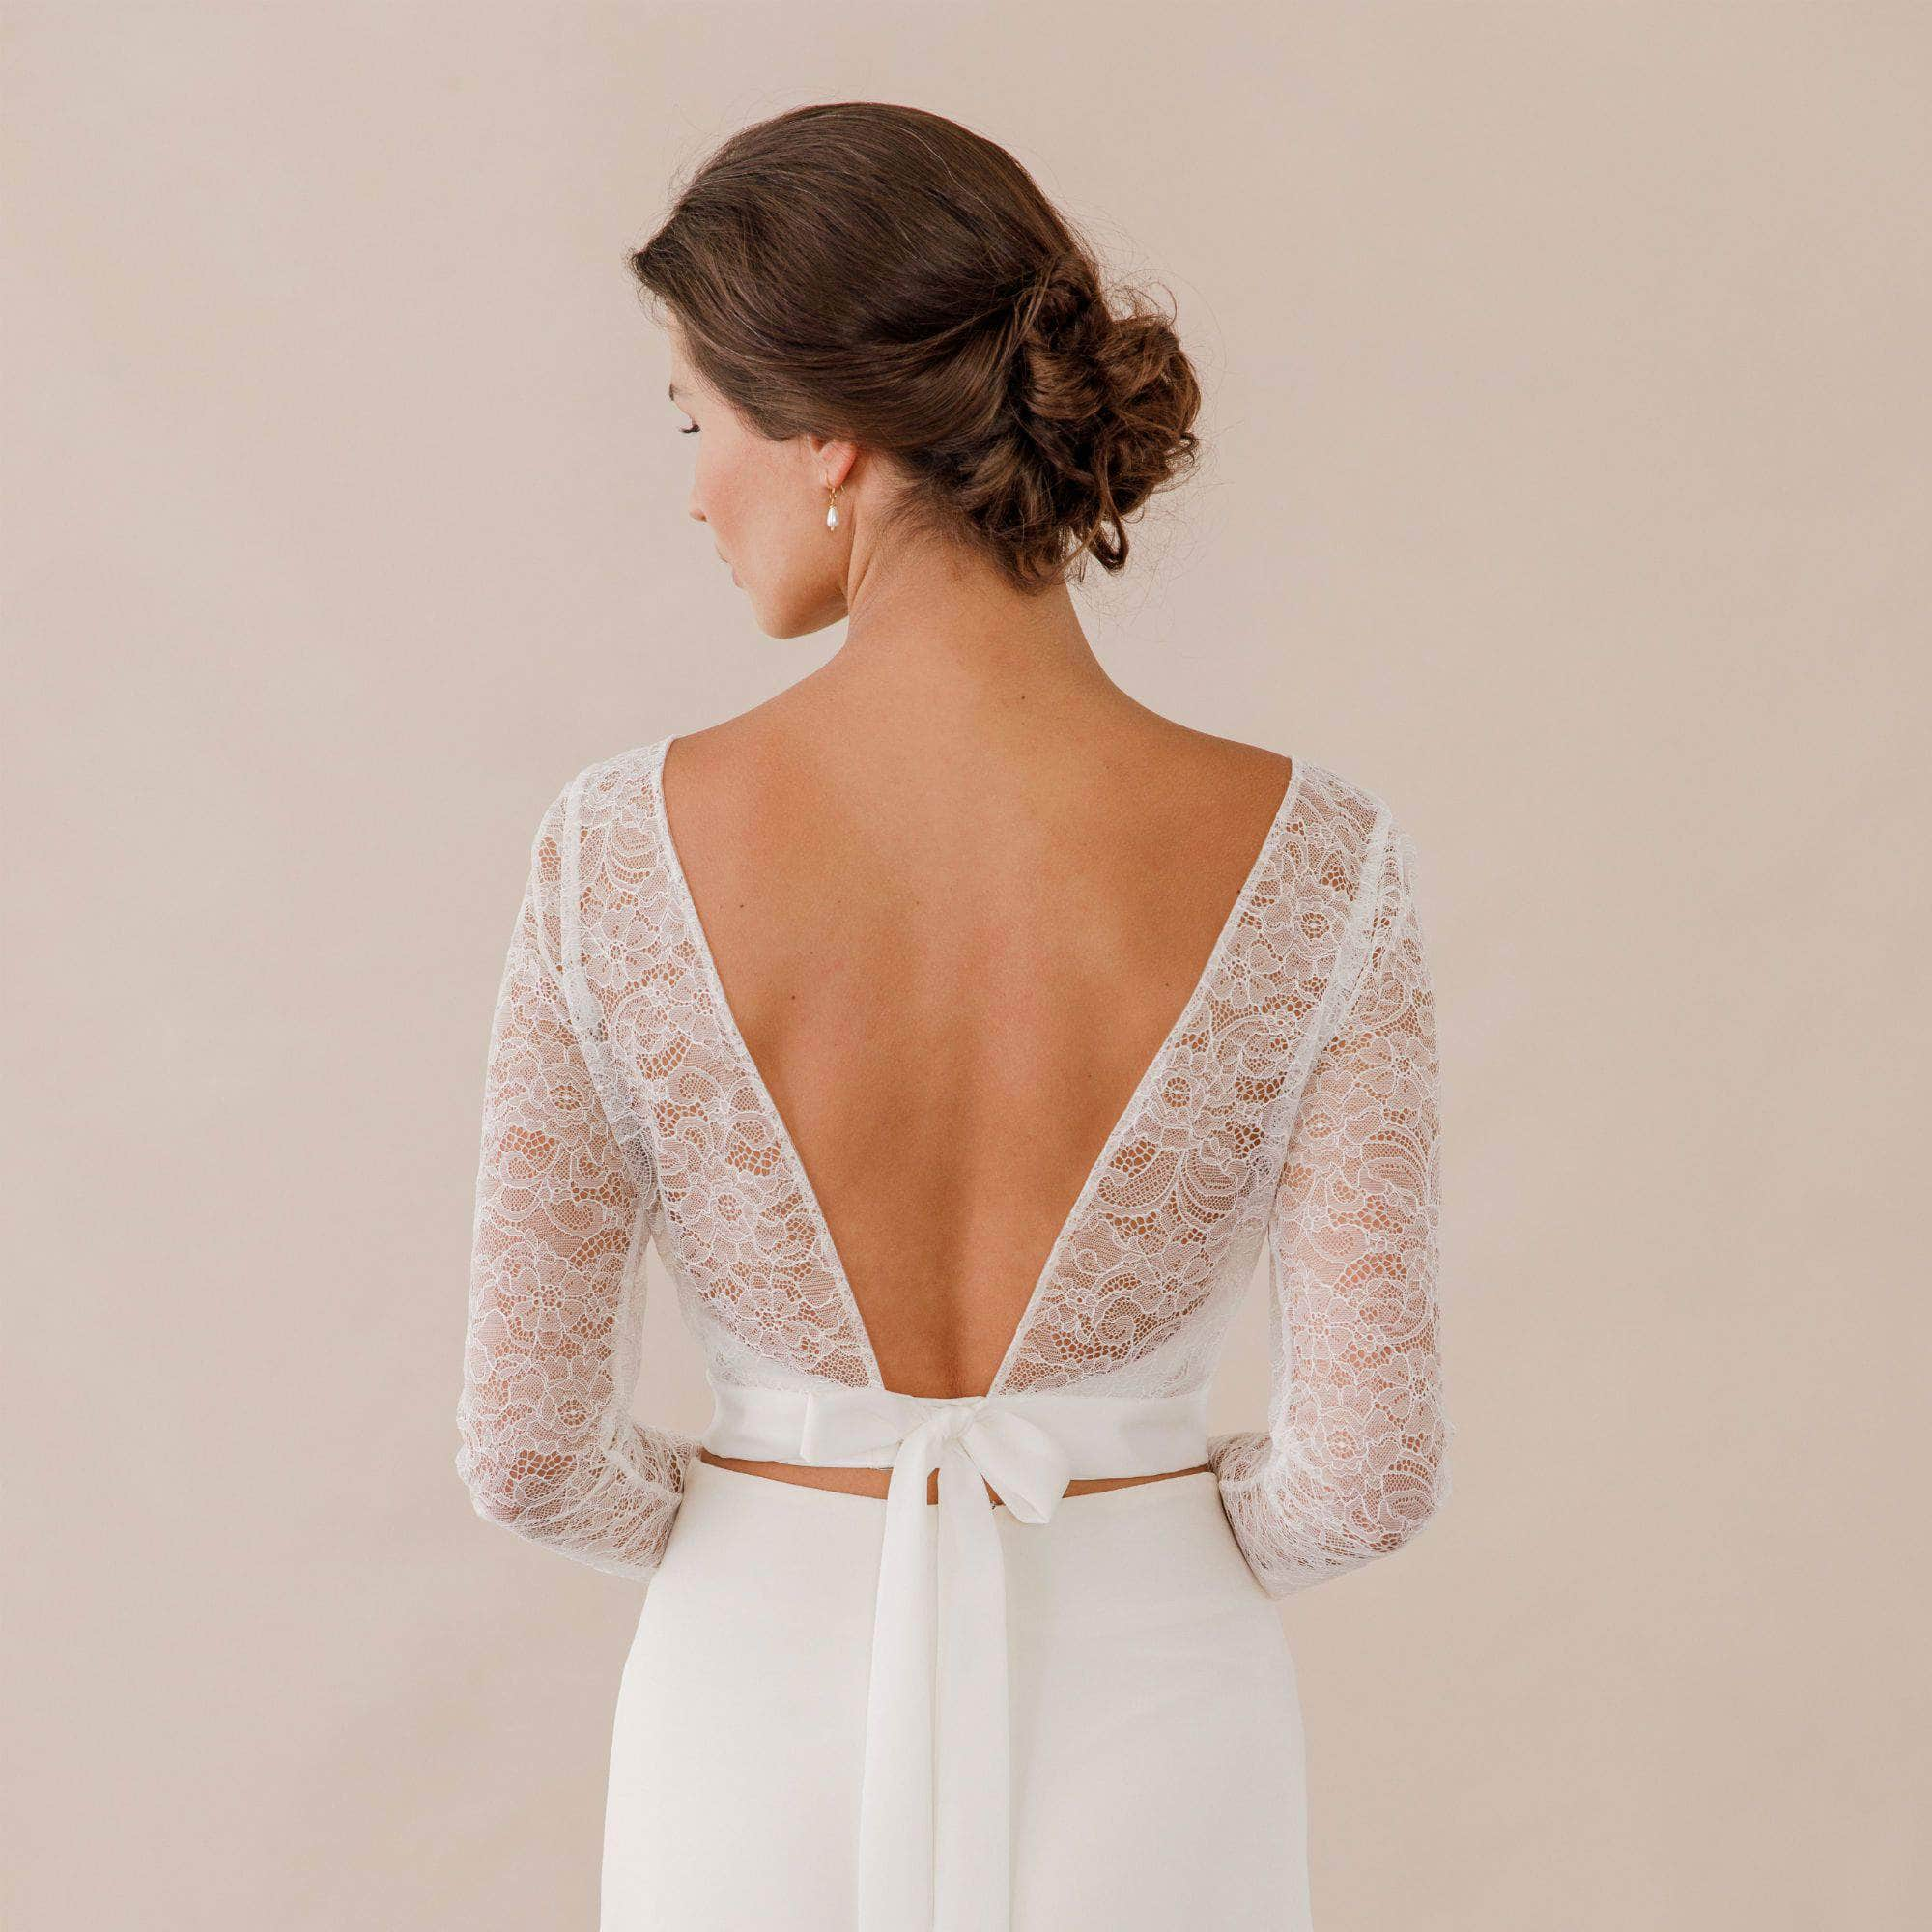 Wedding Cover Up Lace cover up with silk tie up sash - 'Selma'